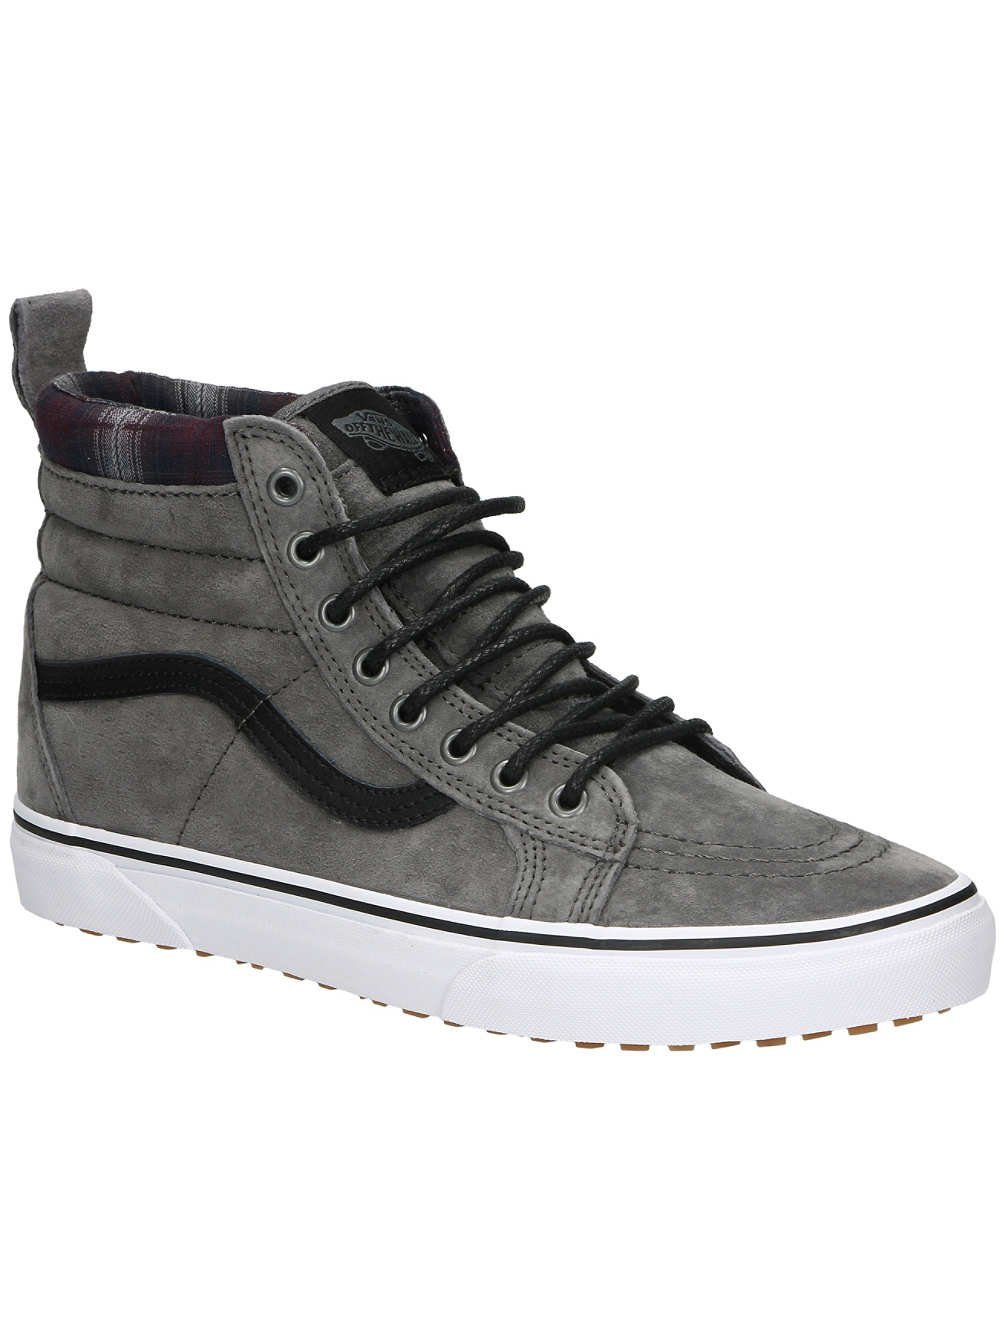 Vans Sk8-Hi Unisex Casual High-Top Skate Shoes, Comfortable and Durable in Signature Waffle Rubber Sole B019KVWKFW 8 M US Women / 6.5 M US Men|(Mte) Pewter/Plaid